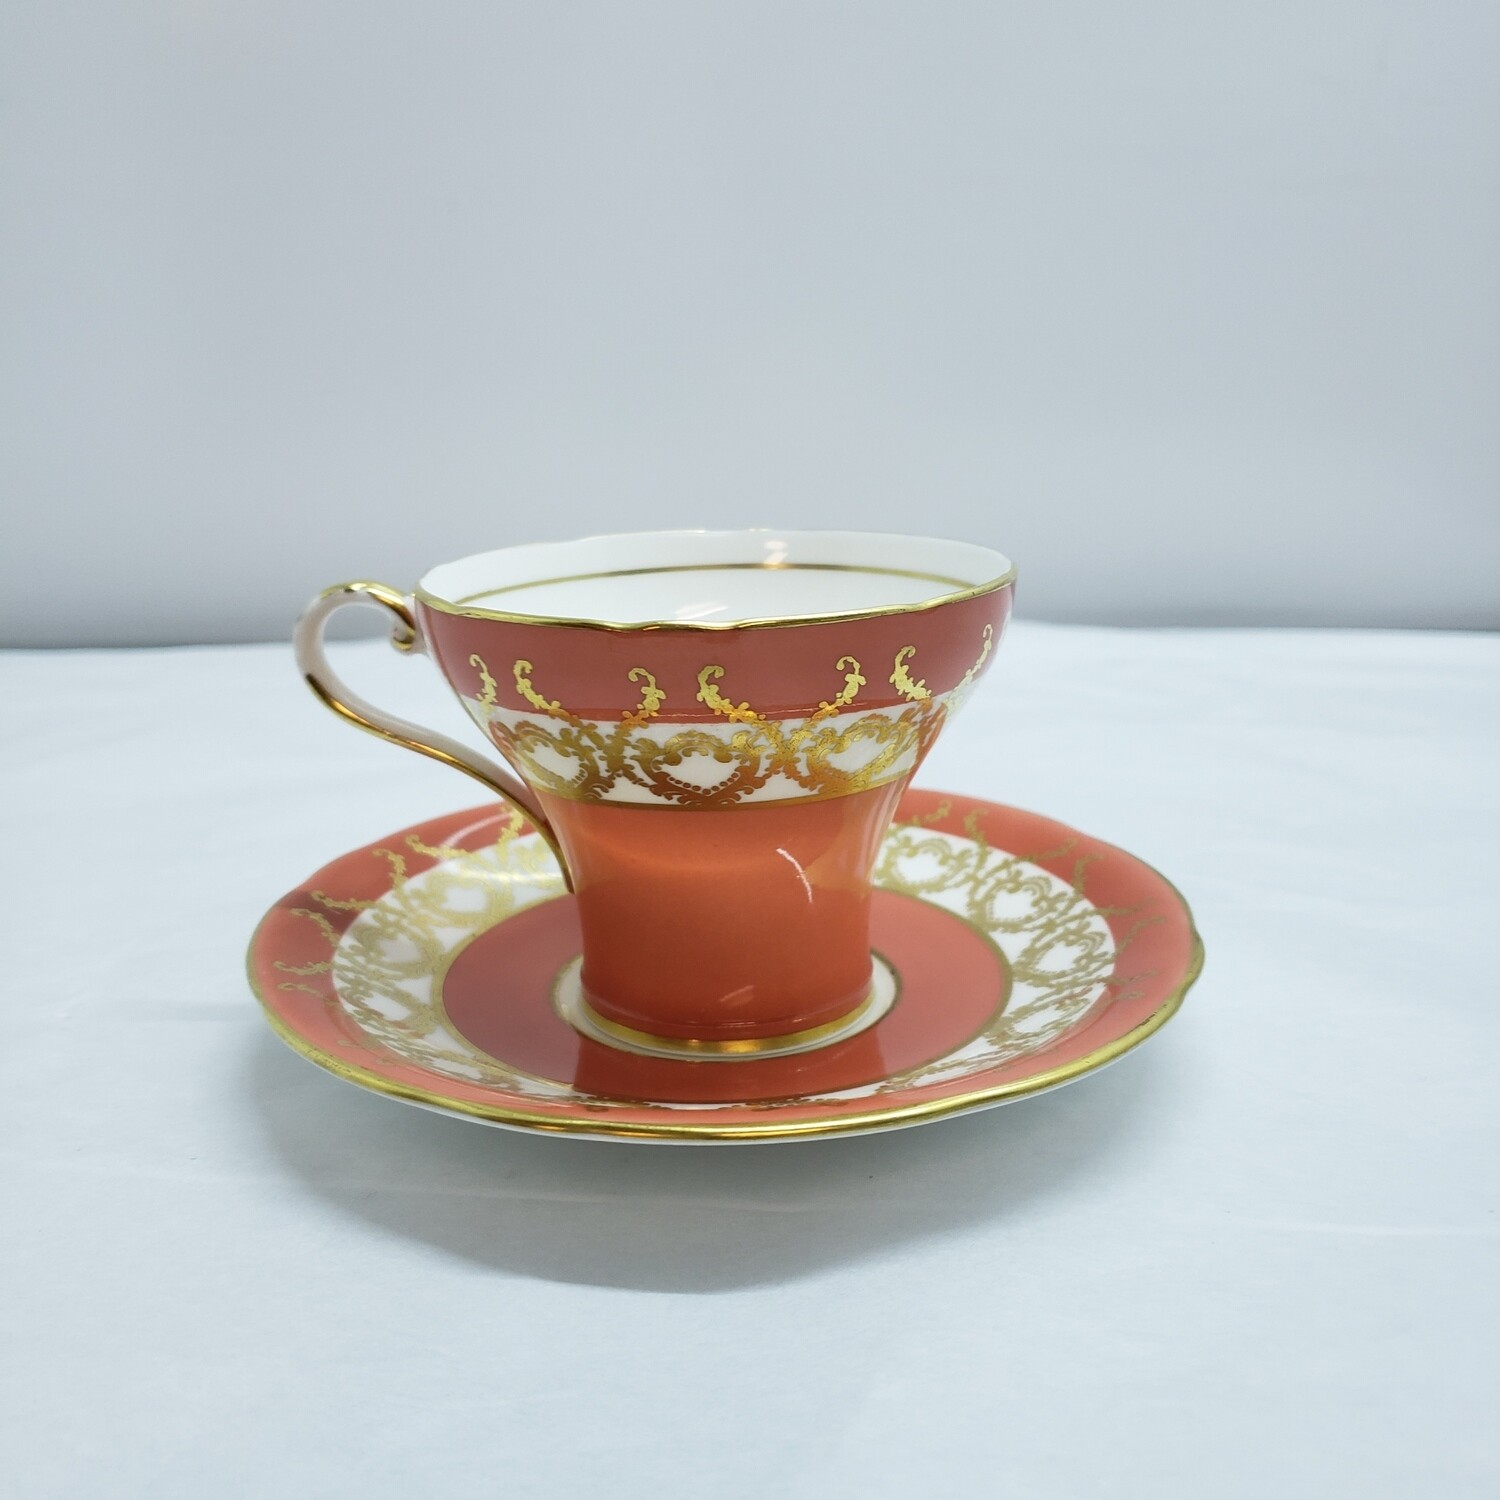 Aynsley - Cup and Saucer - C21